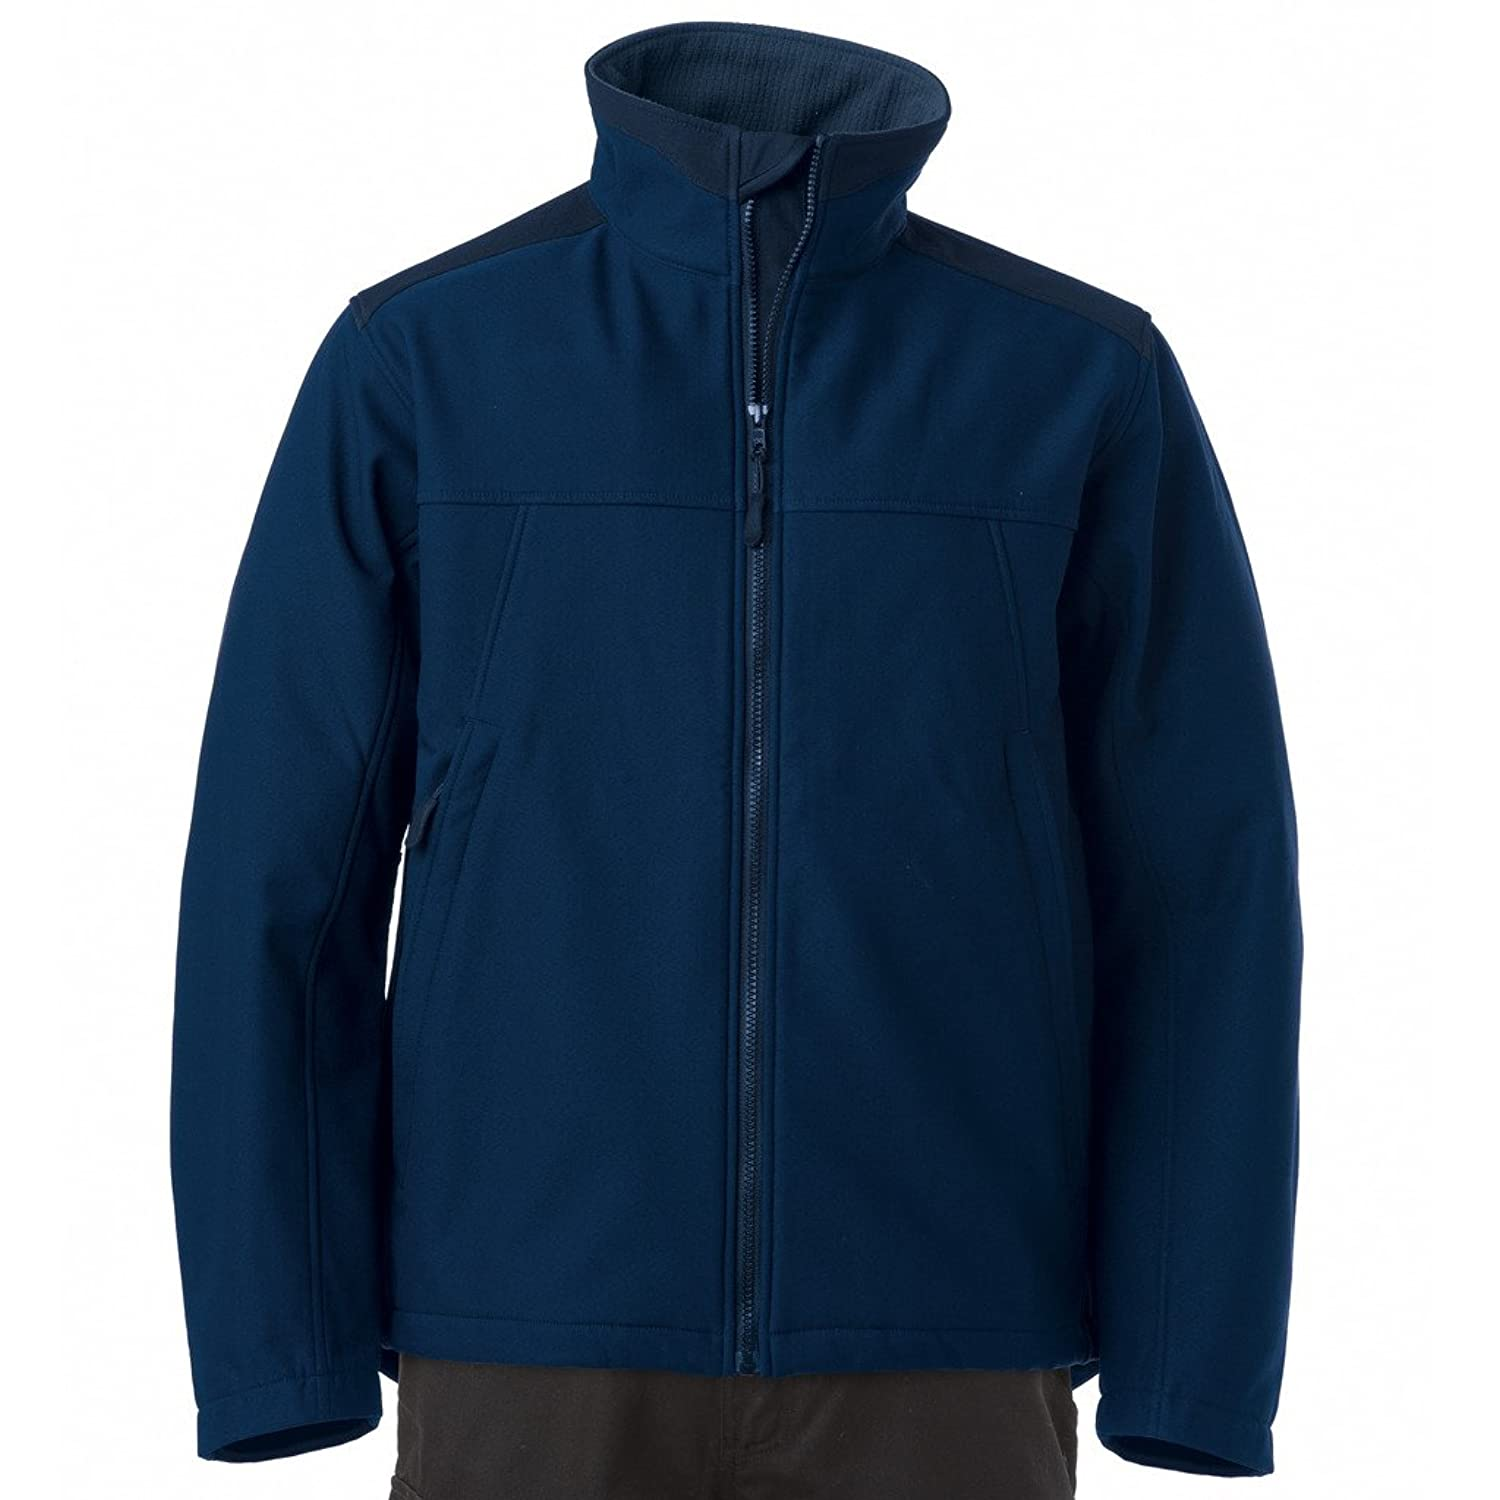 MAKZ Russell Workerwear softshell jacket